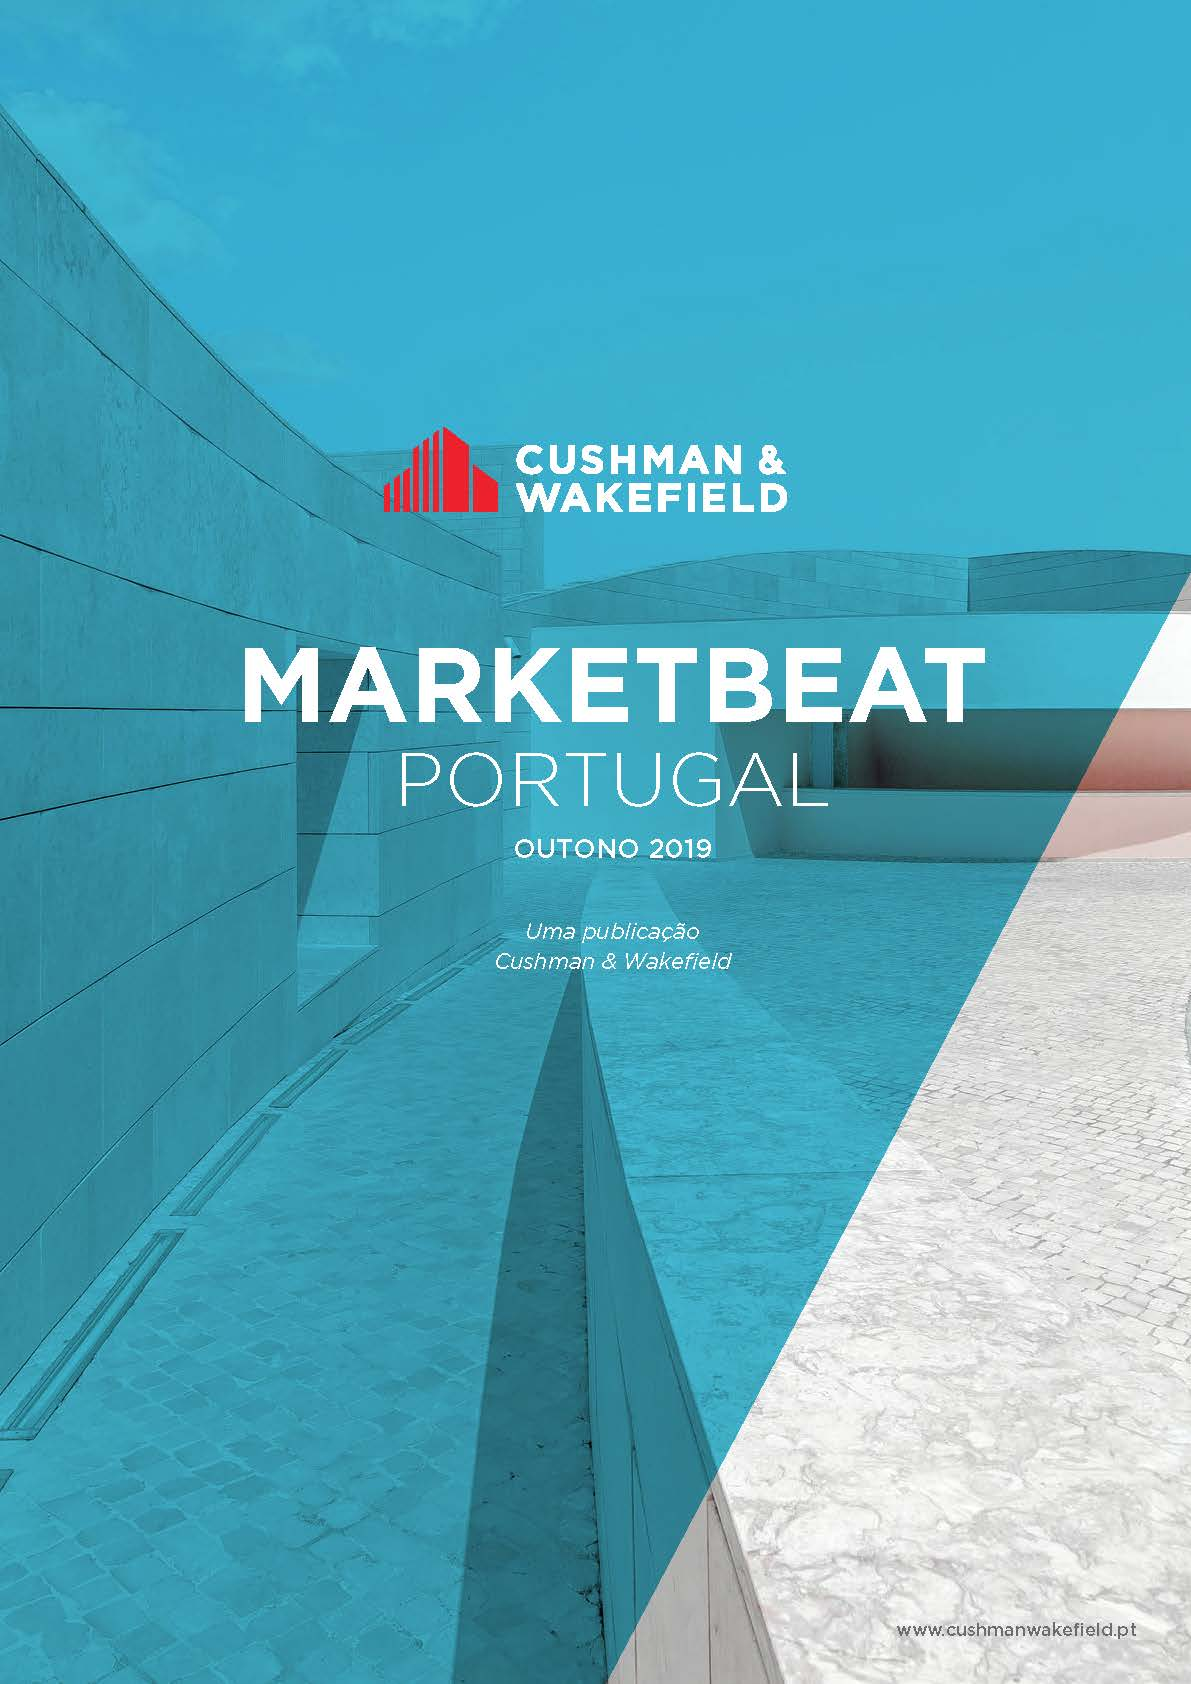 Marketbeat Portugal Outono 2019 capa